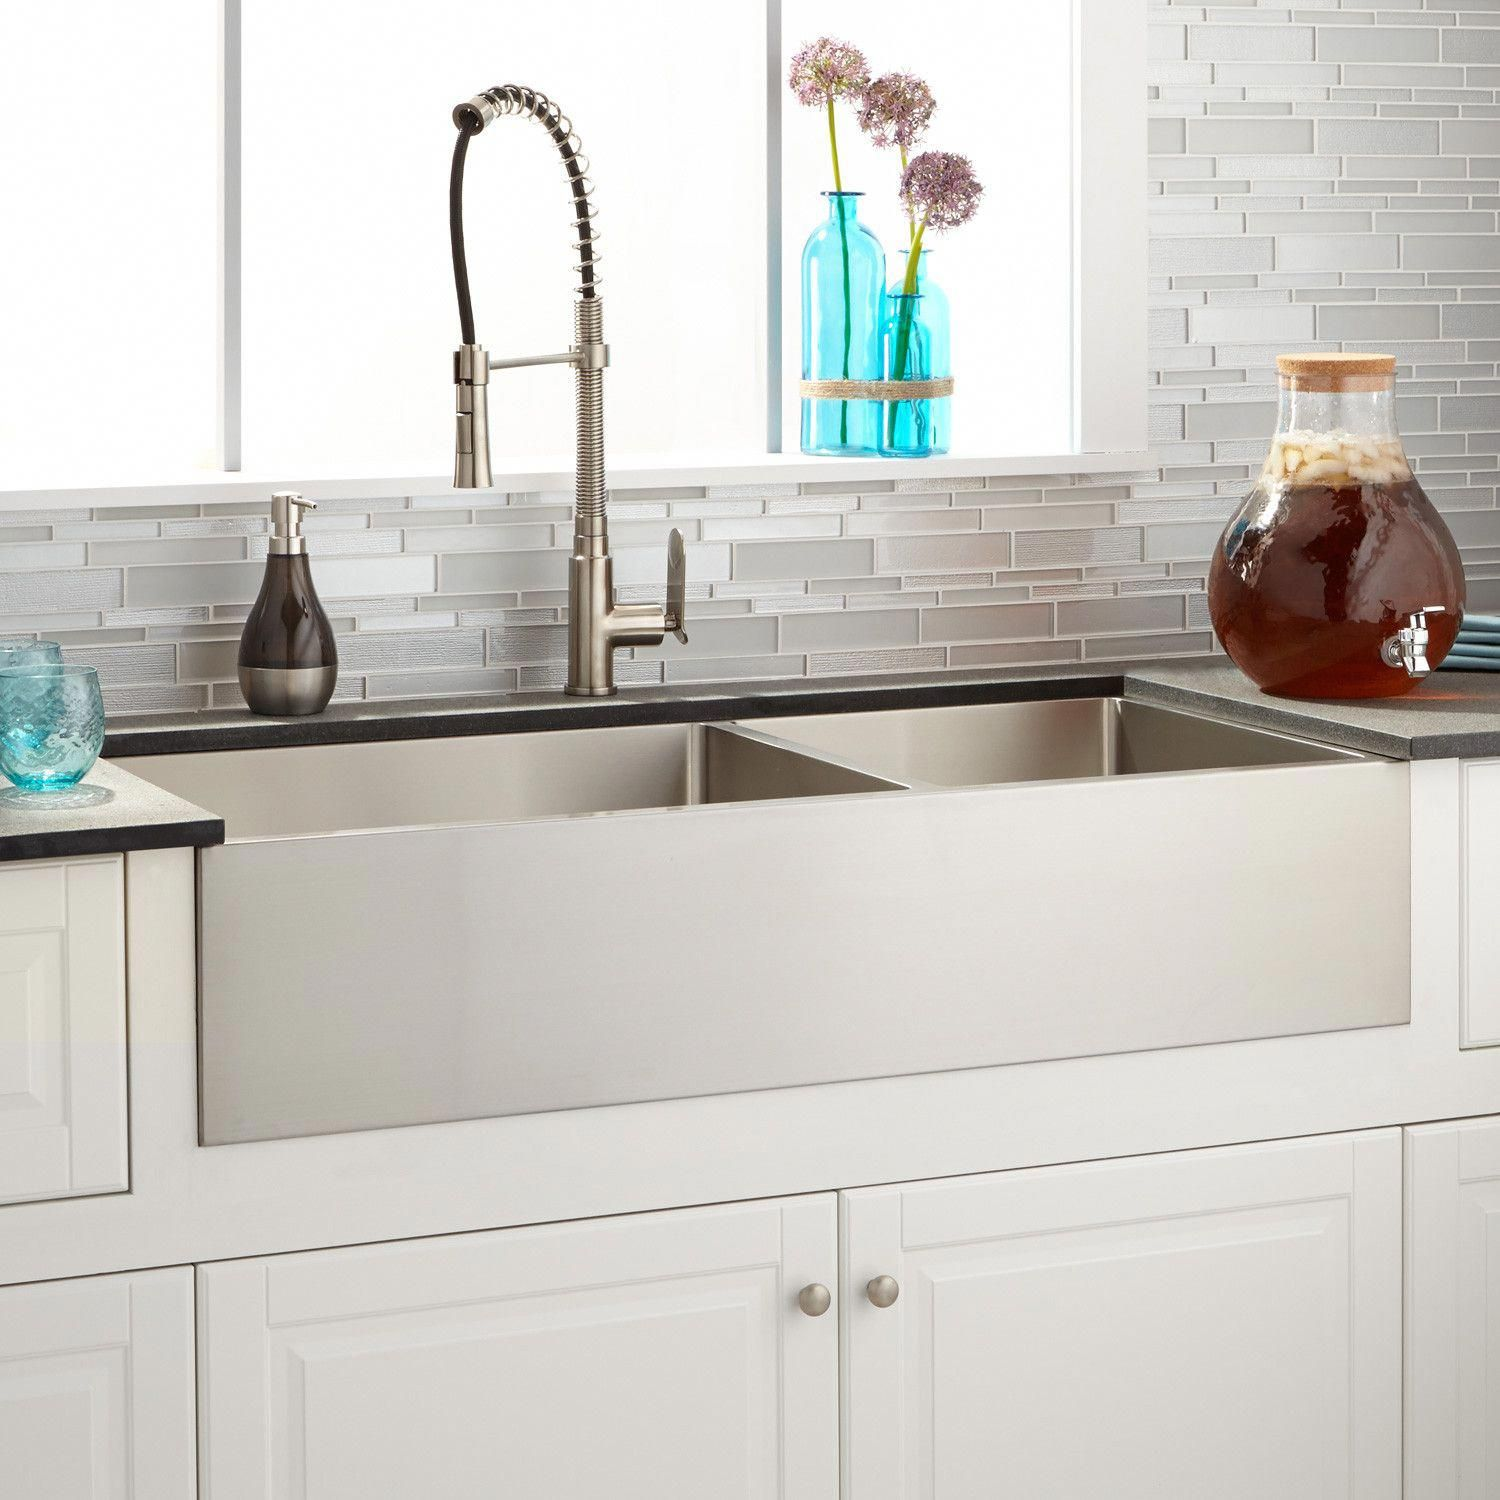 How to clean the trash? Stainless steel farmhouse sink